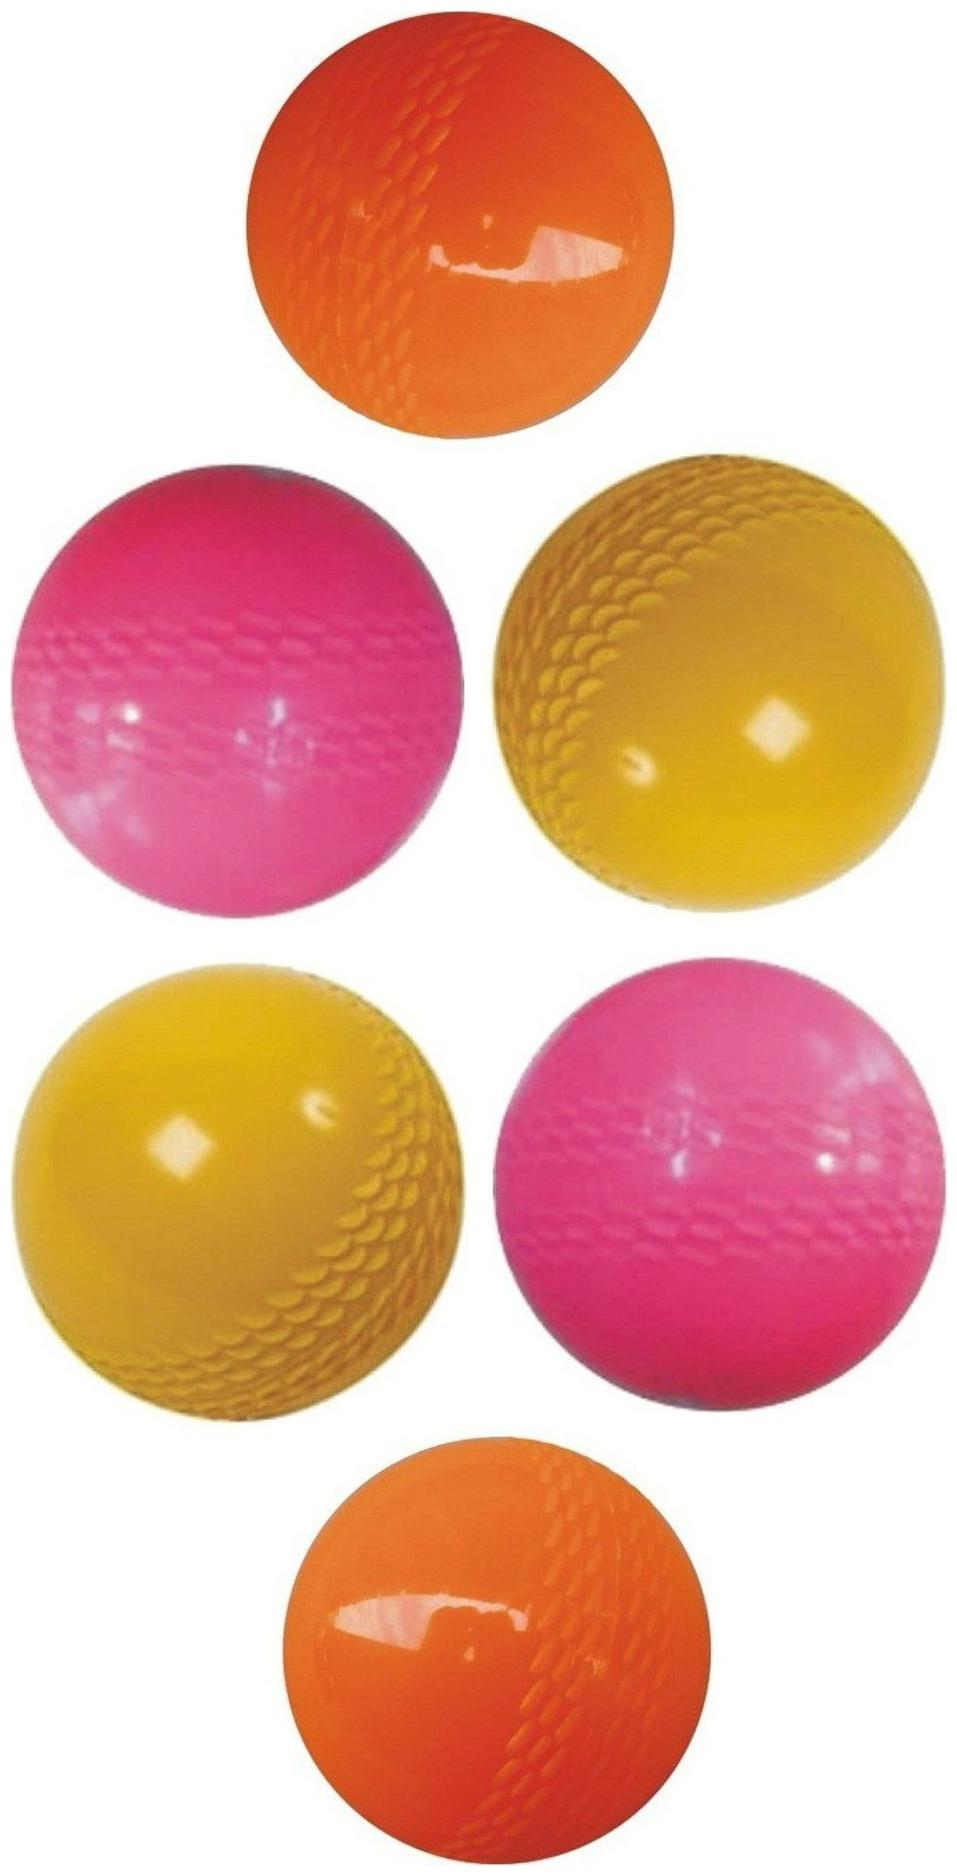 Tima PTM Wind Cricket Ball   Size: Standard  Pack of 6, Multicolor  by Tima International